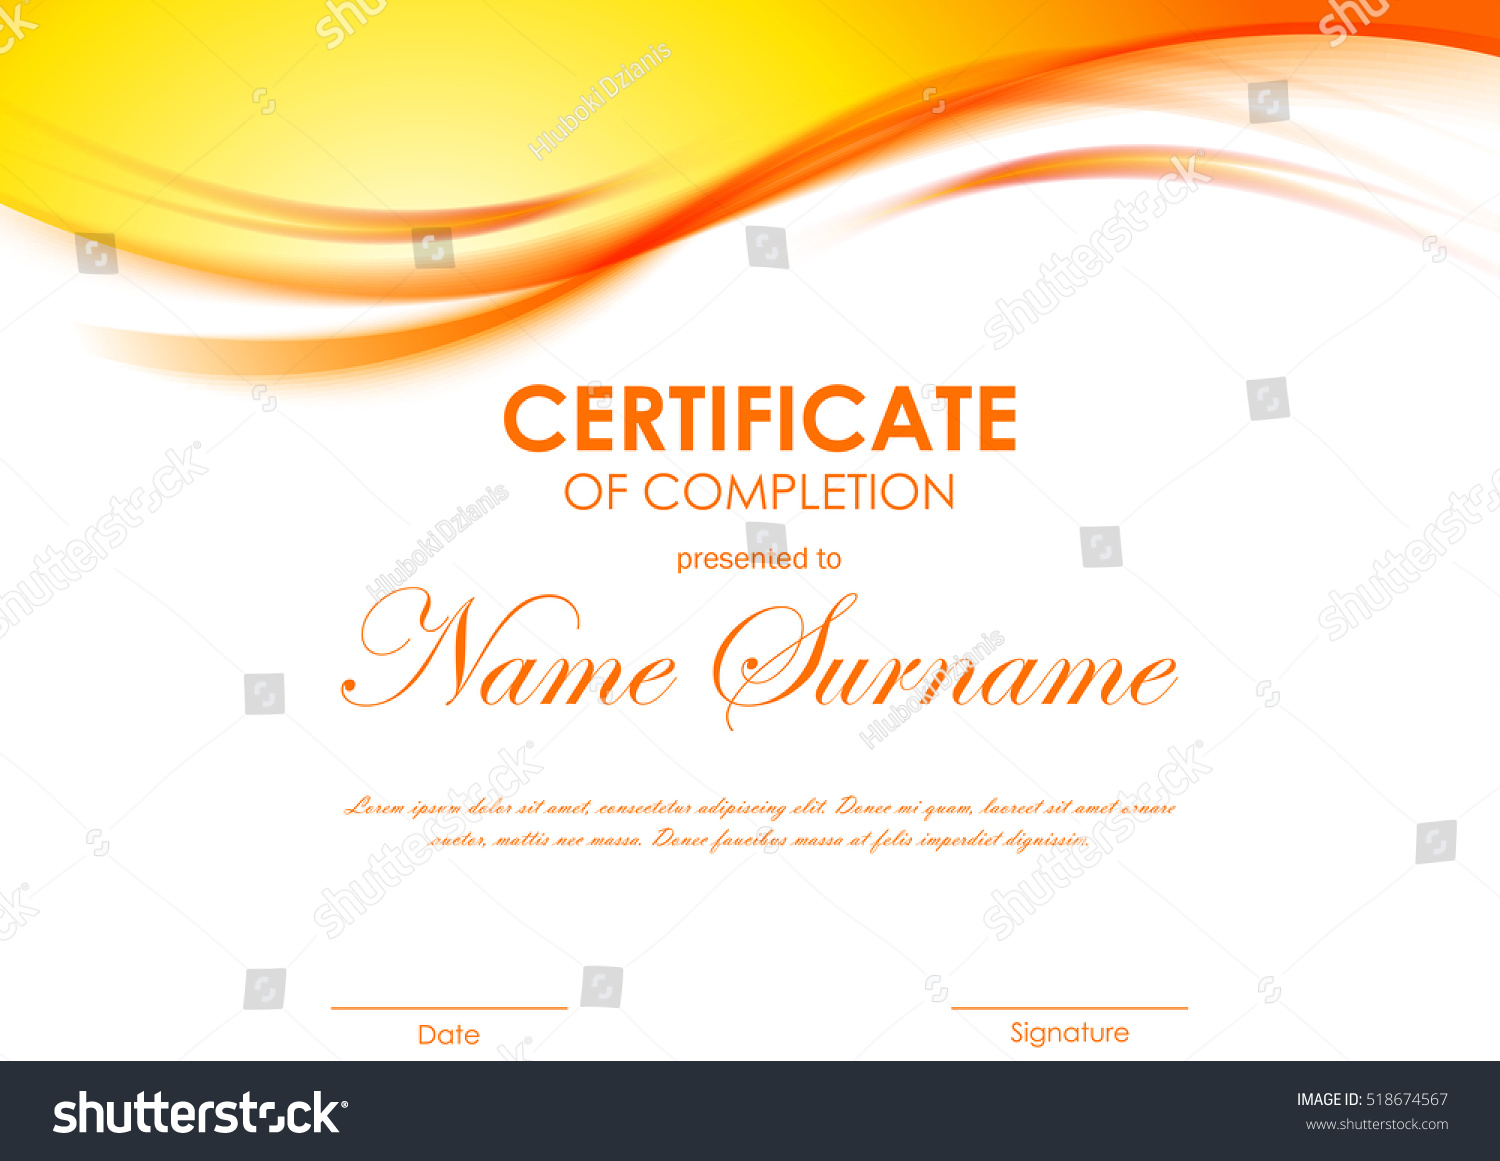 Certificate Completion Template Dynamic Orange Soft Stock ...